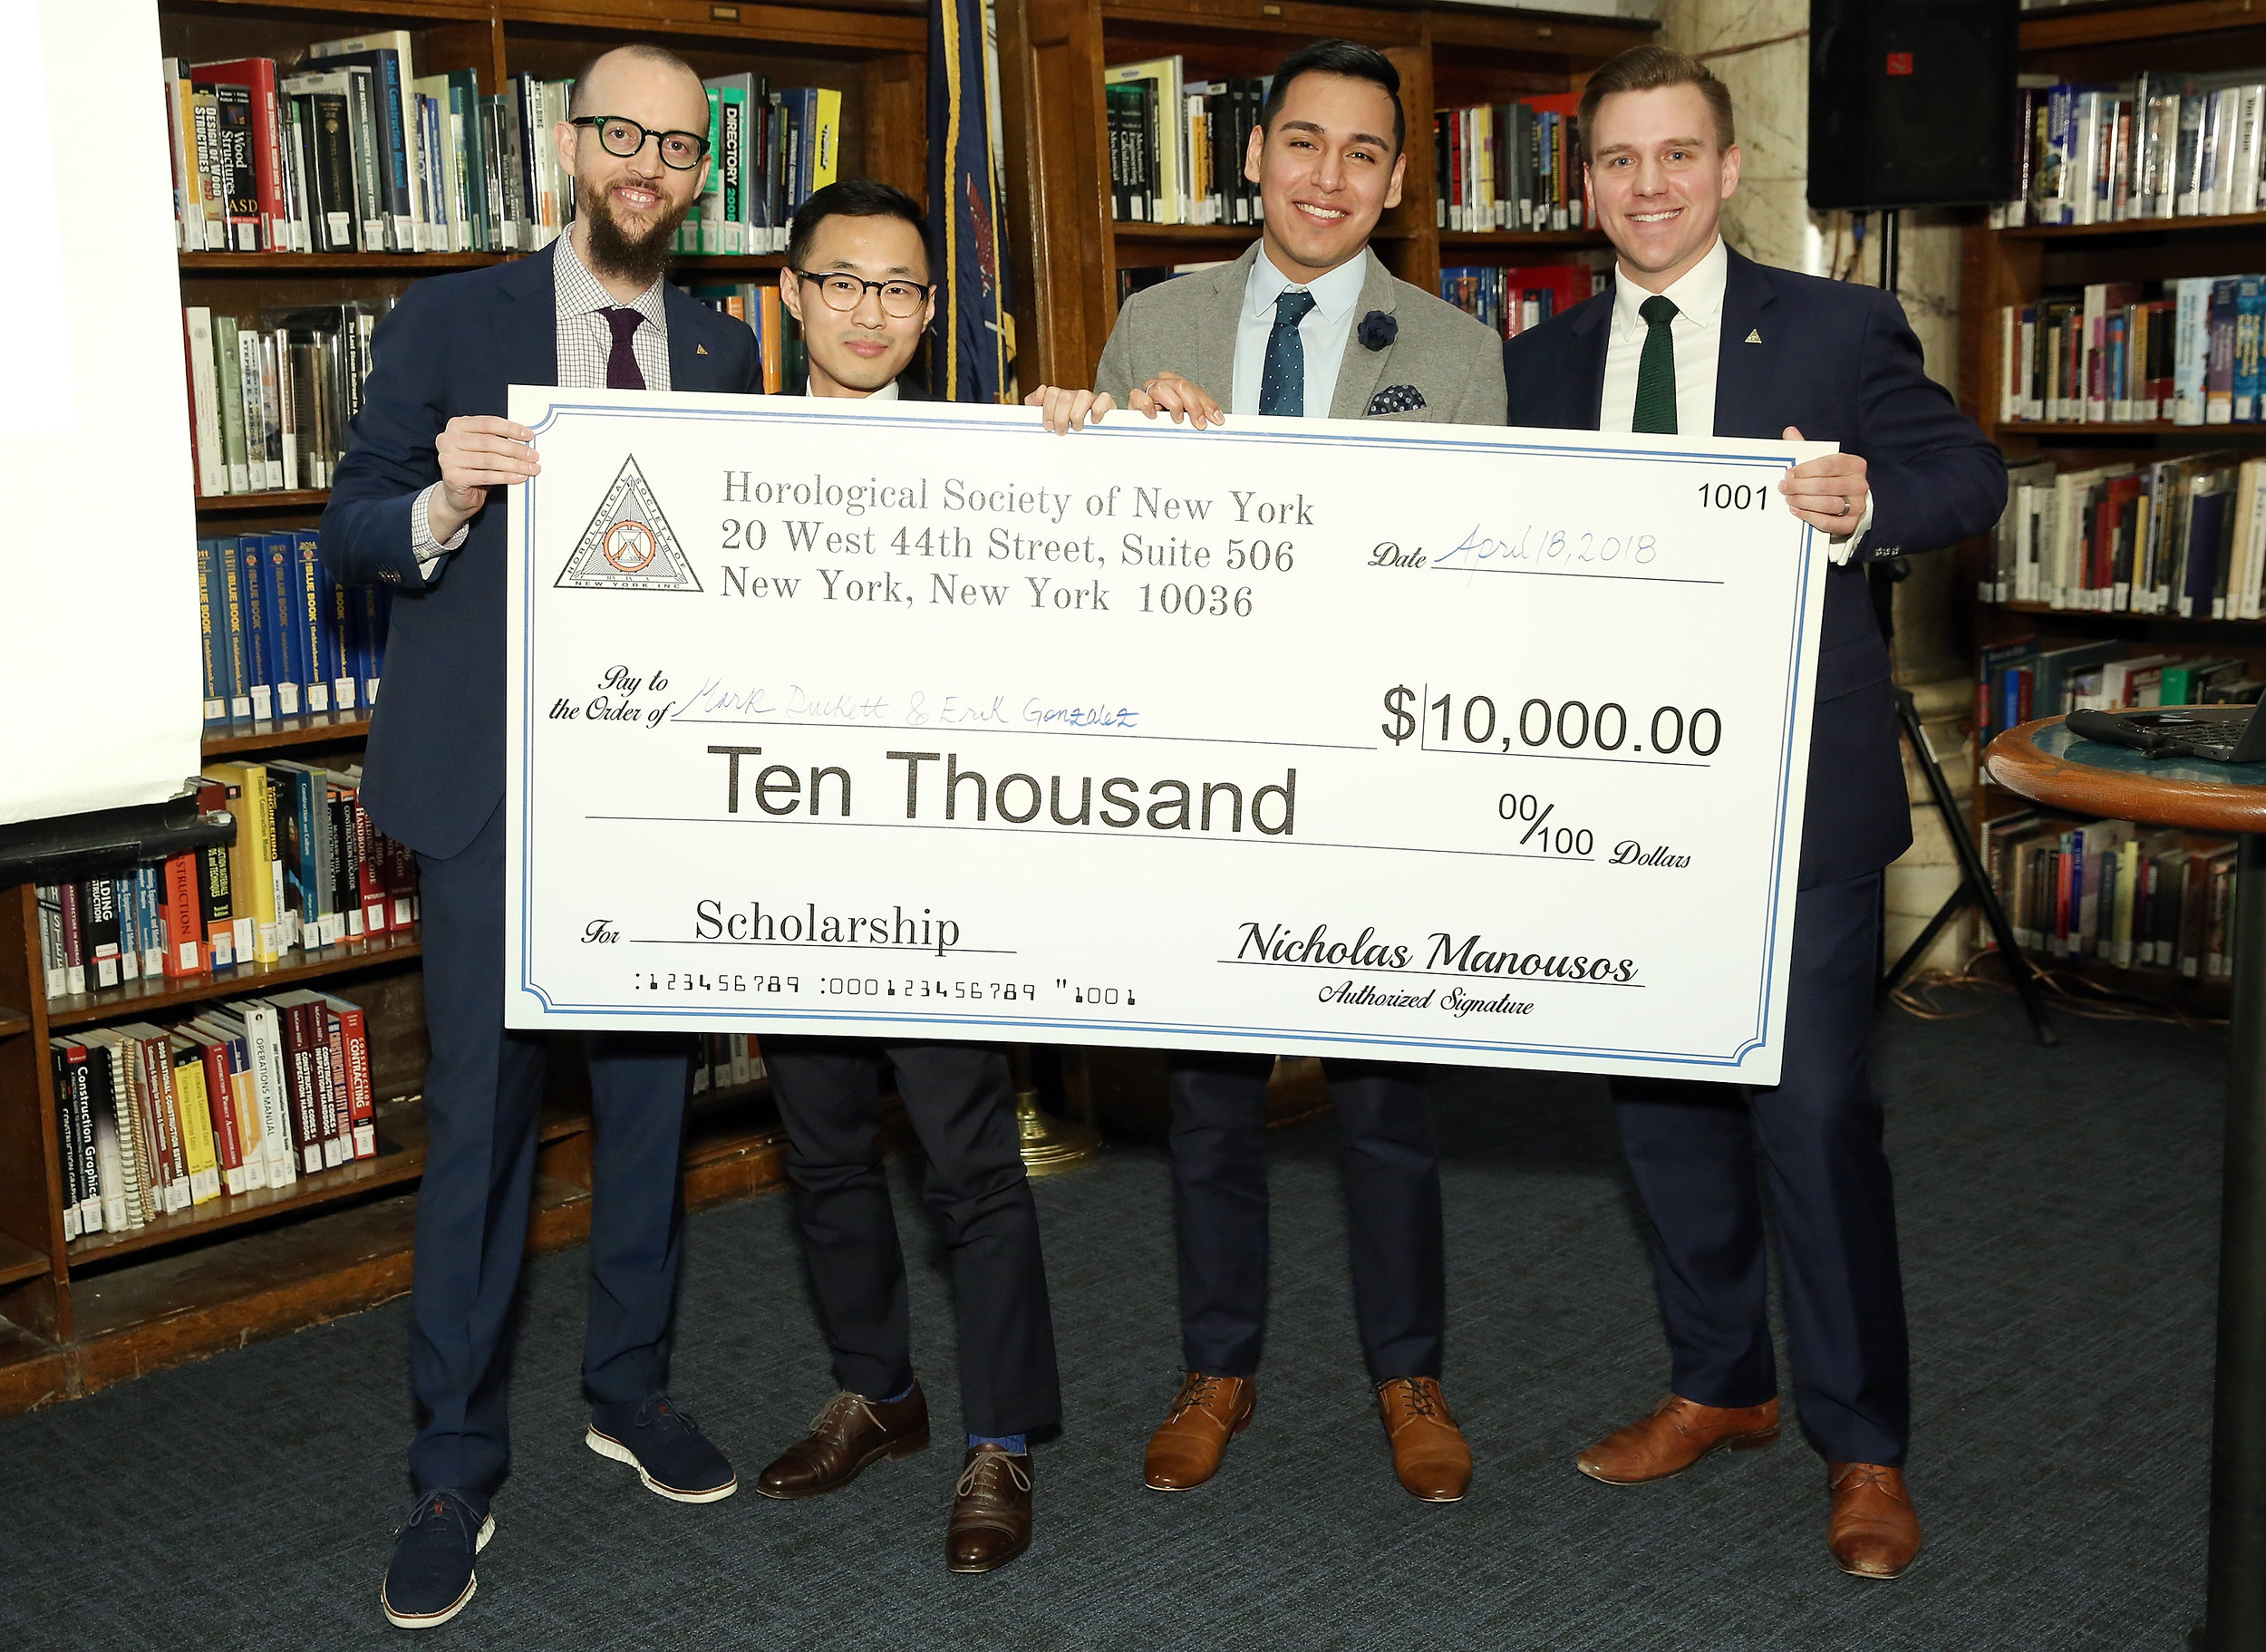 Nicholas Manousos (HSNY's President, left) and Steve Eagle (HSNY's Director of Education, right) presenting the 2018 Henry B. Fried Scholarship to Mark Duckett (middle left) and Erik Gonzalez (middle right).